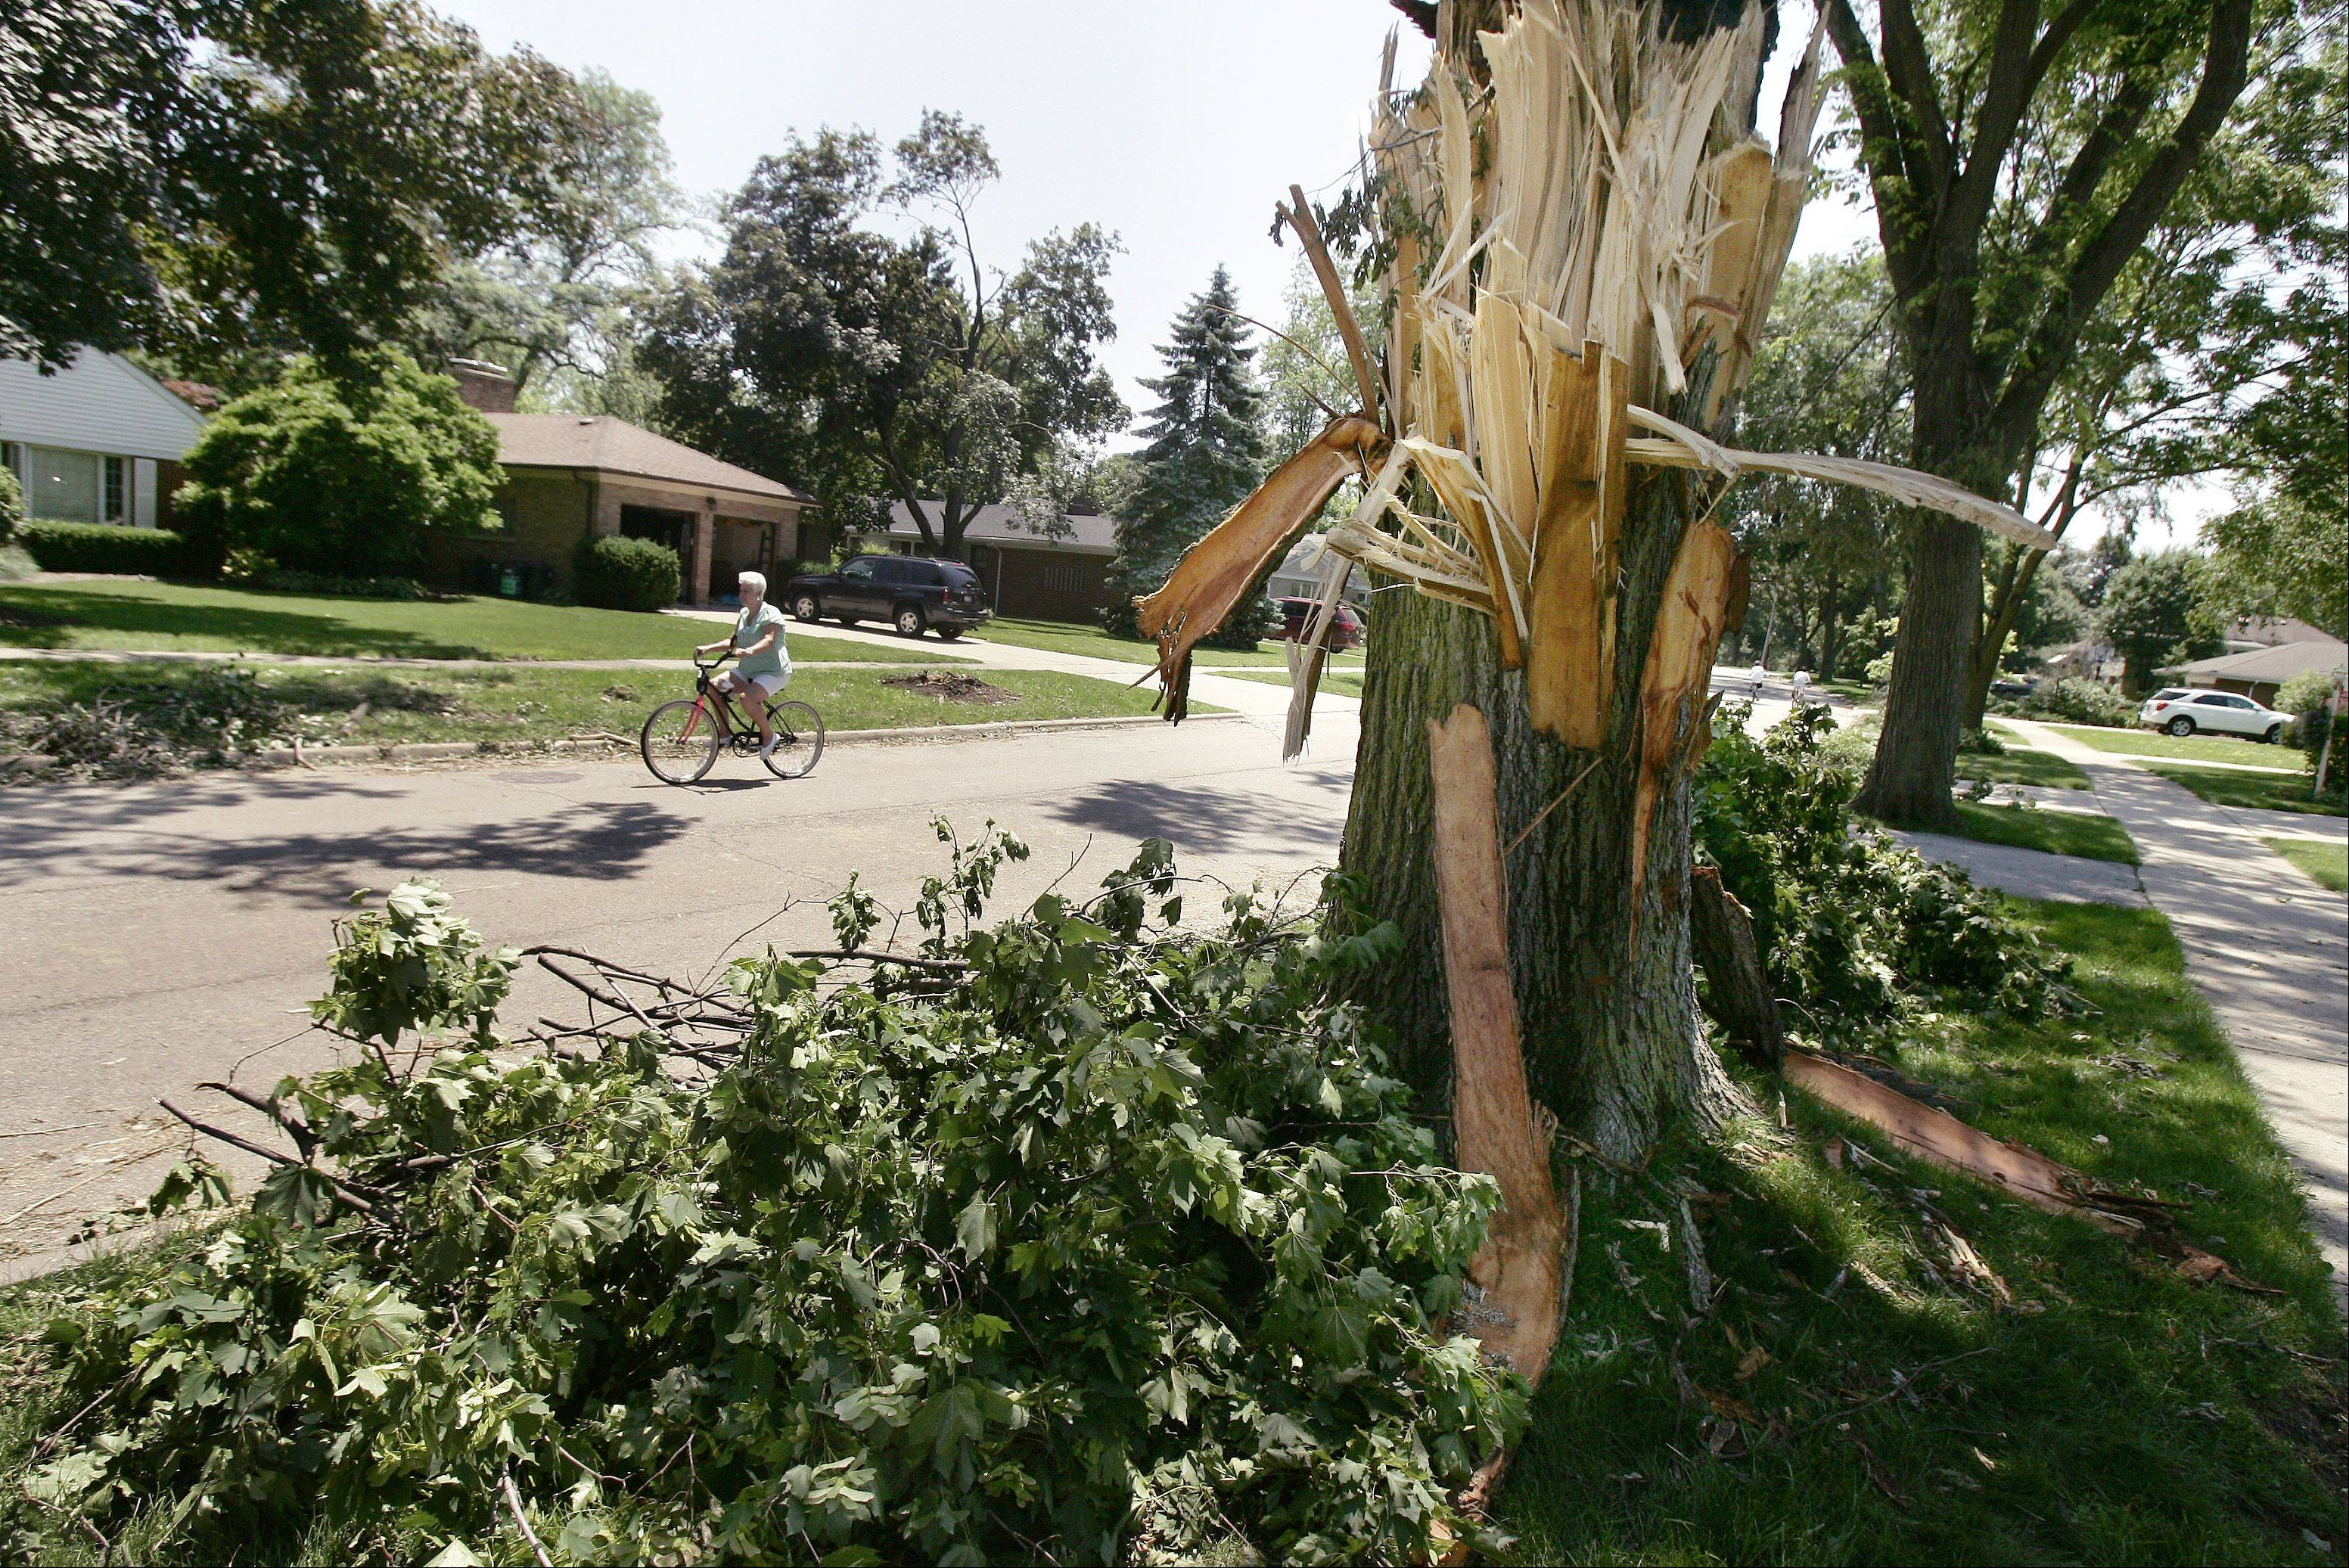 An older tree is shredded due to the winds along Can-Dota Avenue in Mount Prospect that destroyed a large number of trees.